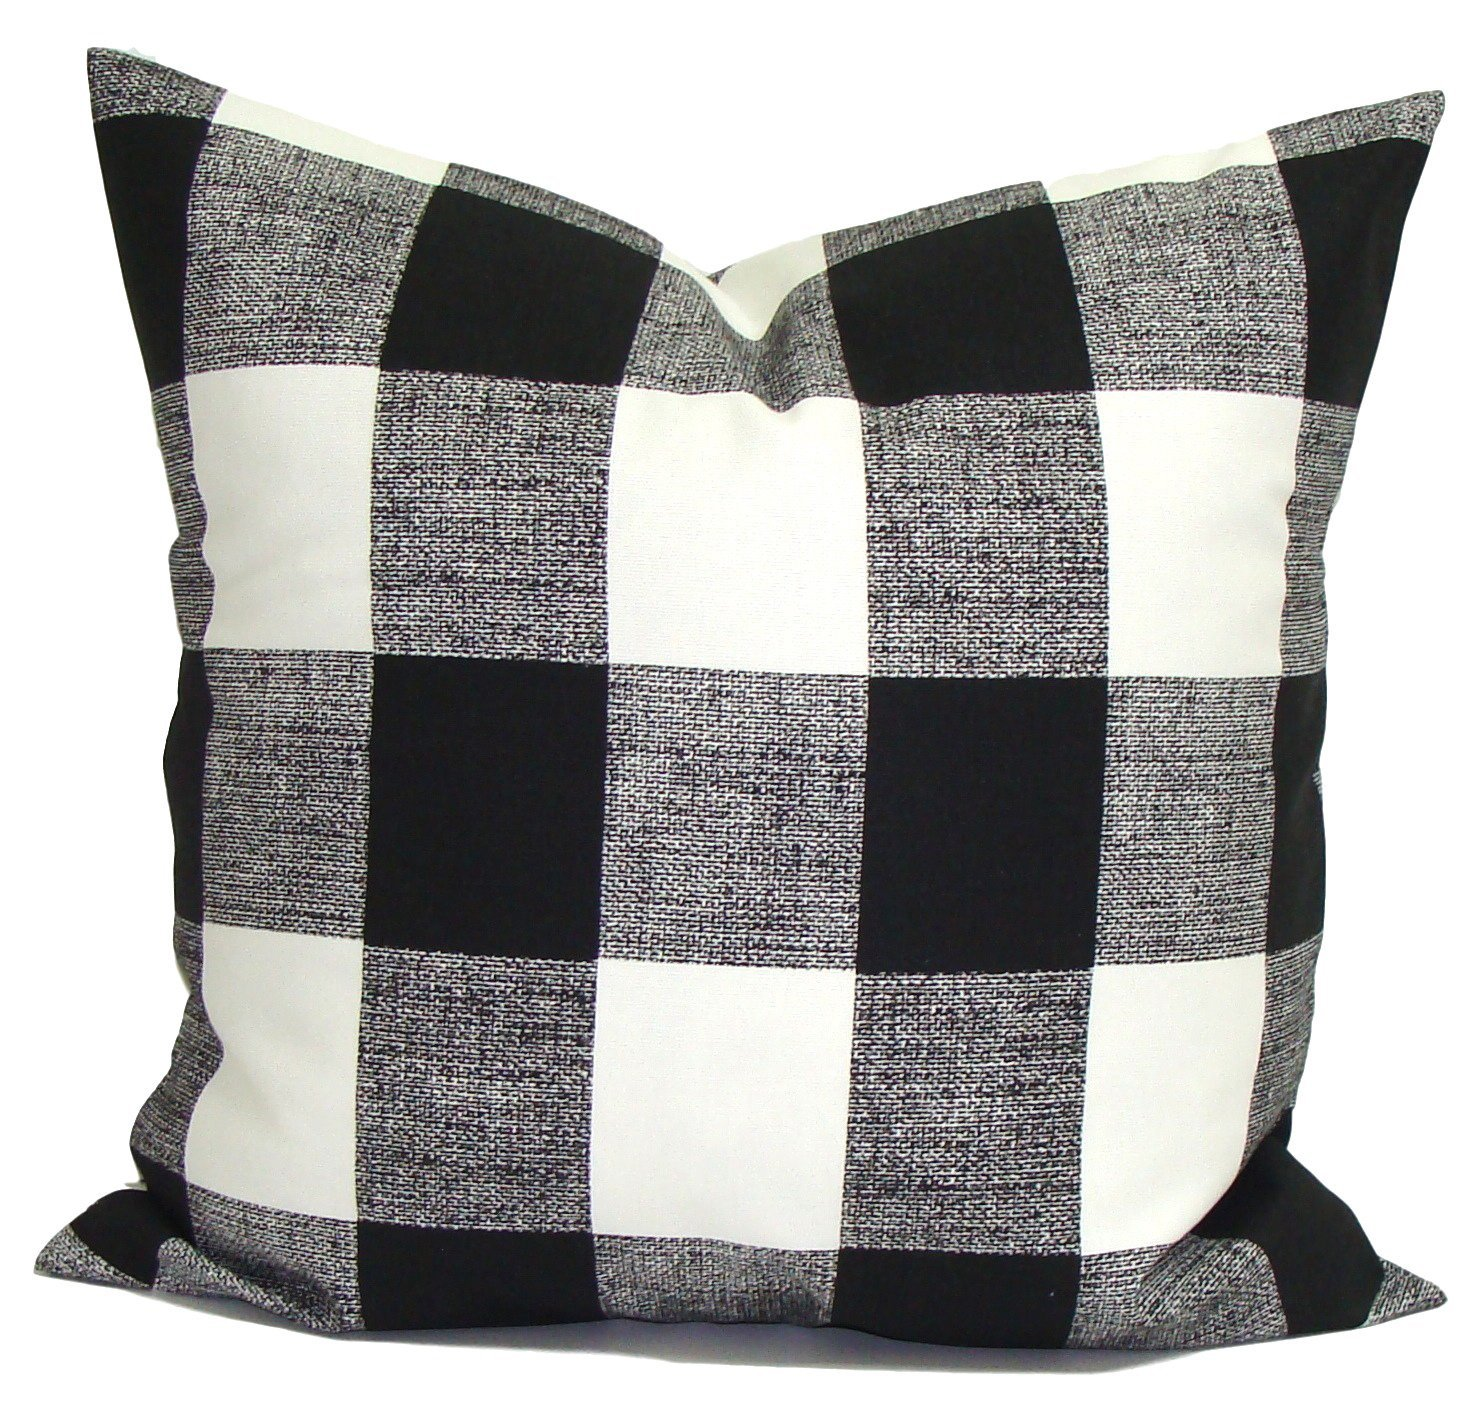 Black OUTDOOR Throw Pillow Cover, Black Plaid Pillow. Check Christmas Throw Pillow Cover, Decorative Pillow Cover, Buffalo Check Throw Pillow, Plaid Pillow, Any Size,Farmhouse Pillow Cover.OUTDOOR